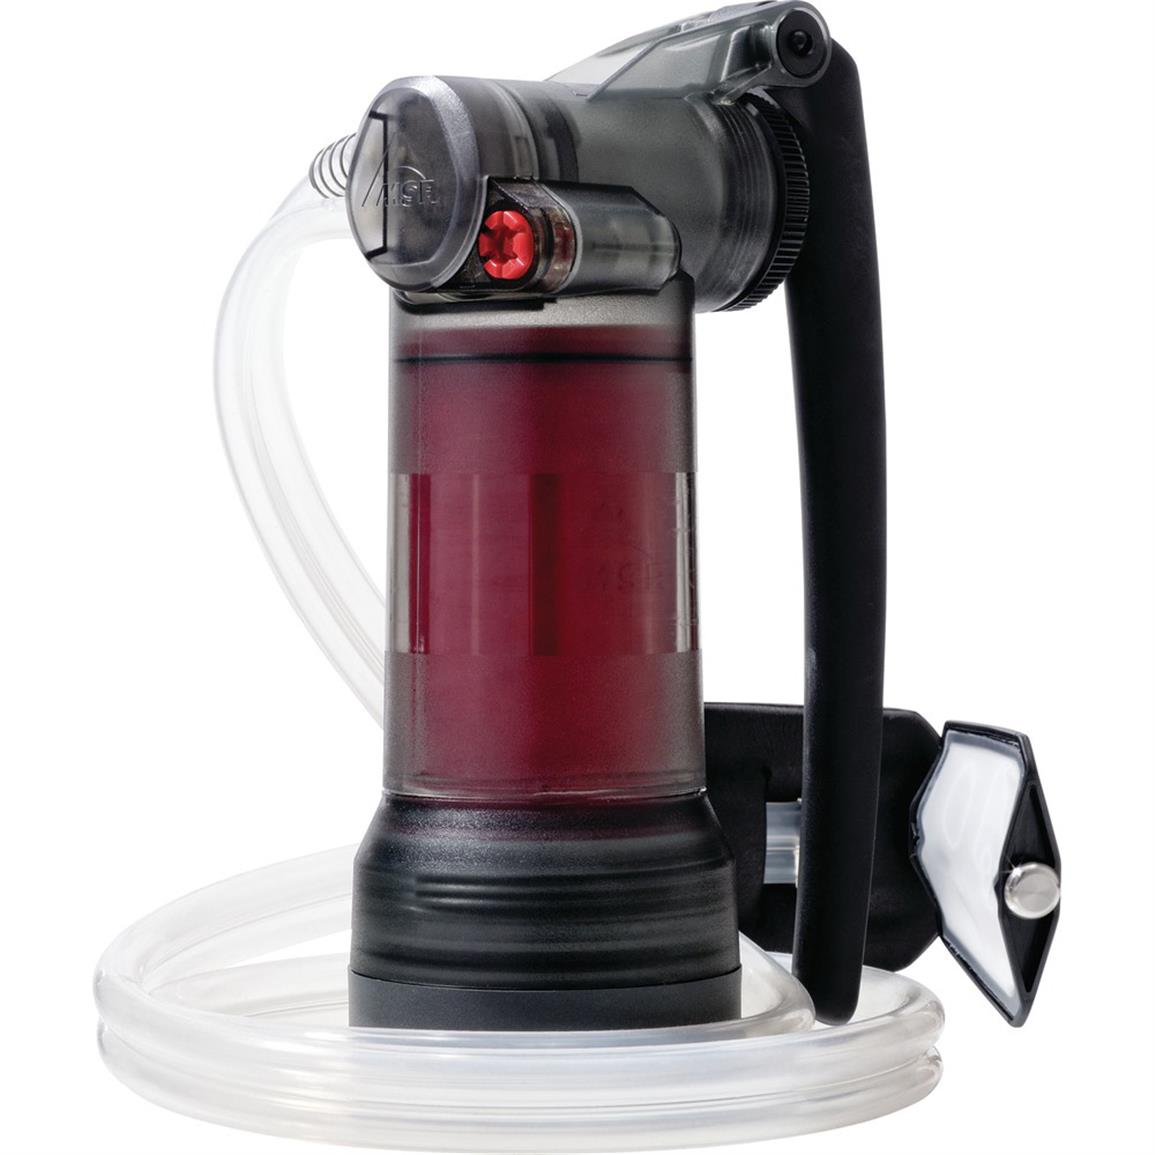 Filters up to 2.5 liters (0.6 gallons) per minute